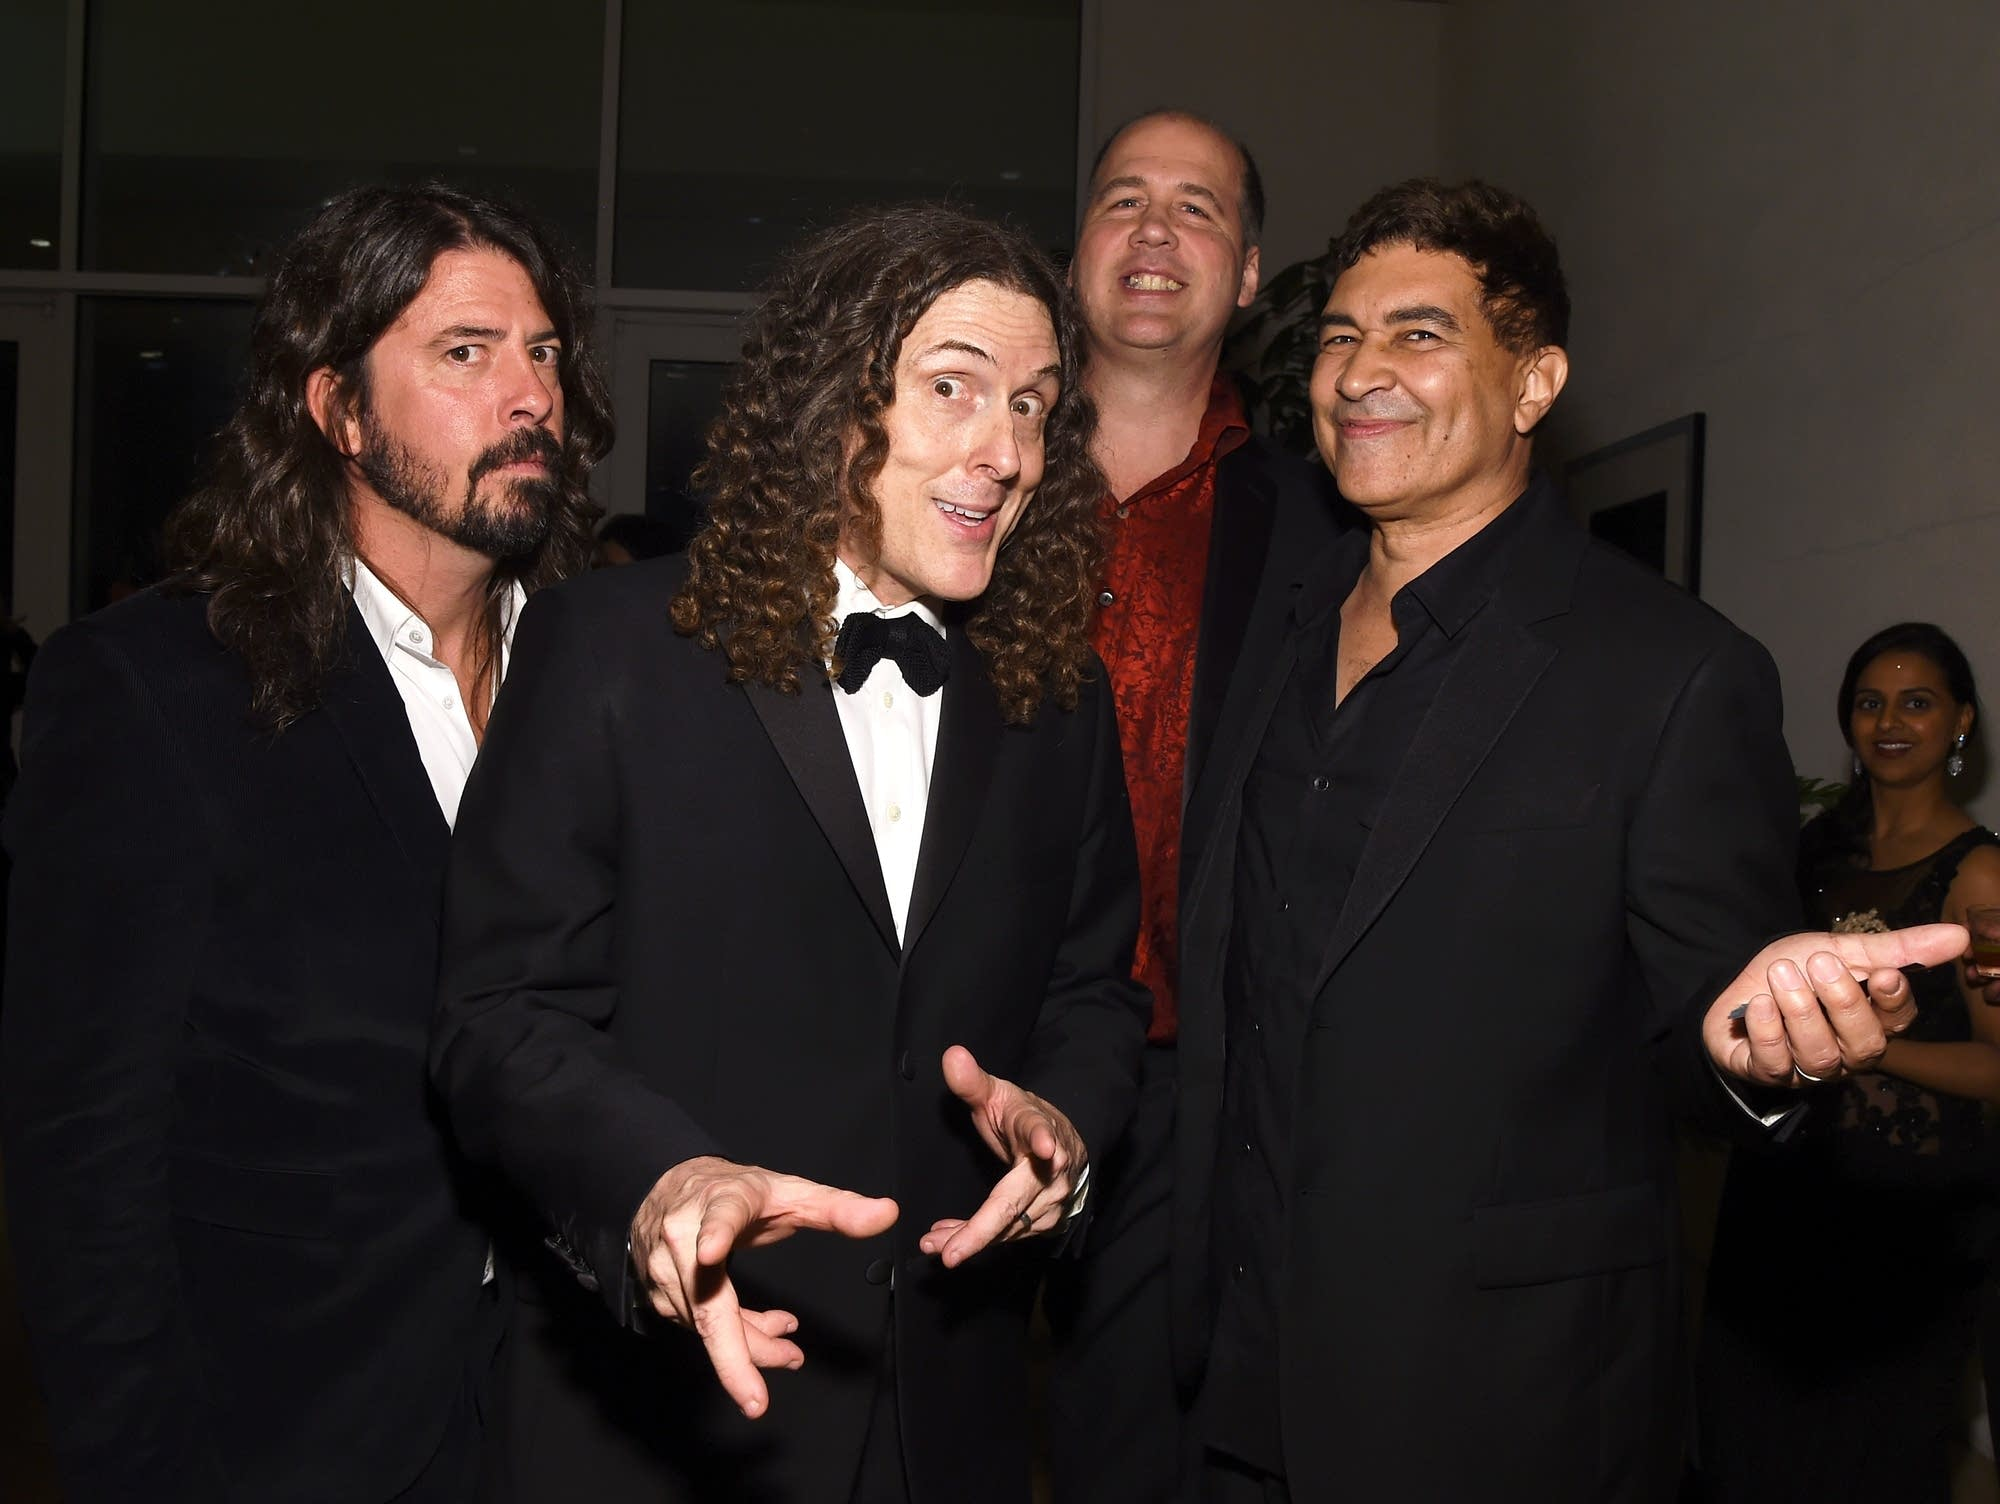 Dave Grohl, 'Weird Al' Yankovic, Krist Novoselic, and Pat Smear.